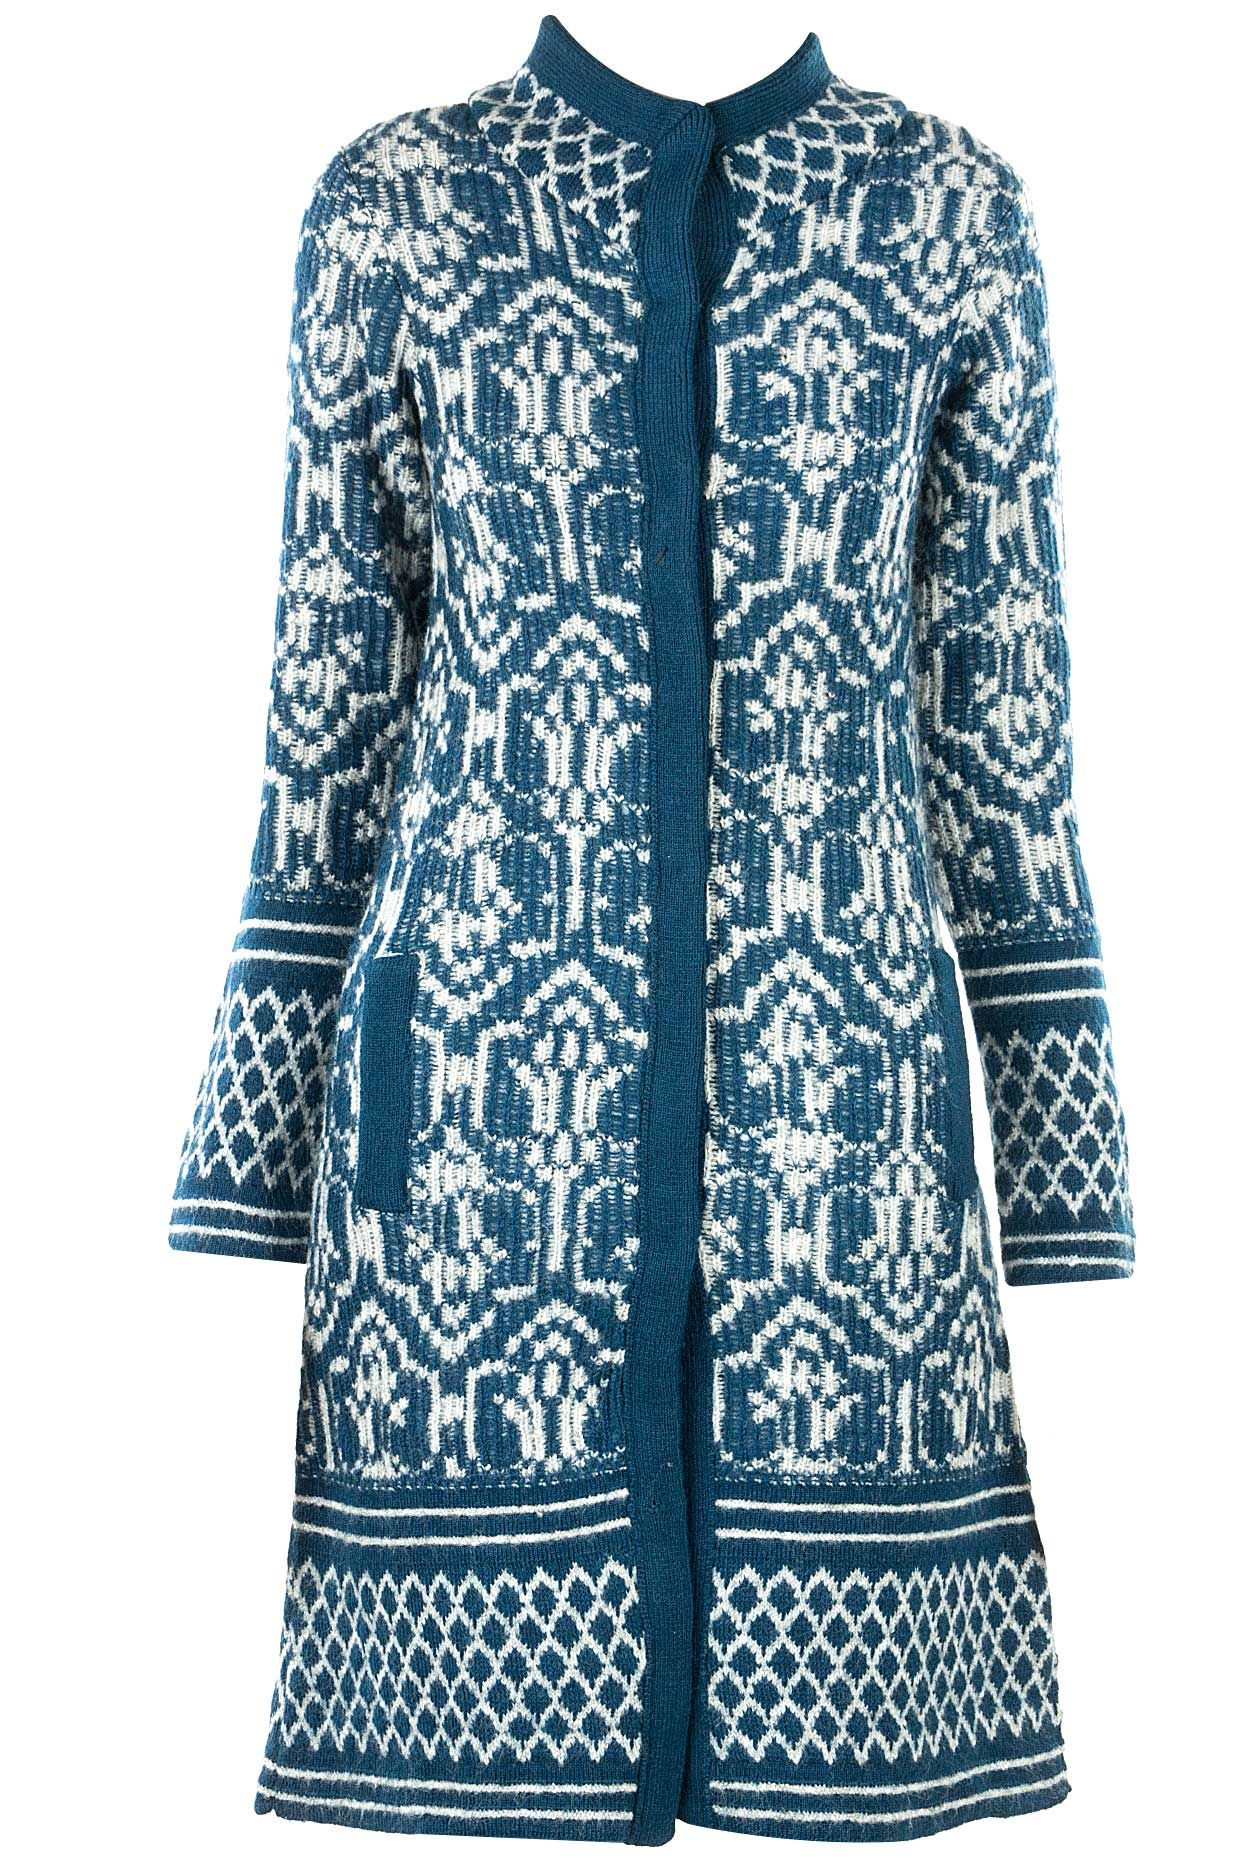 Petrol Blue and white jacquard knitted sweater jacket available only at  Pernia's Pop-Up Shop